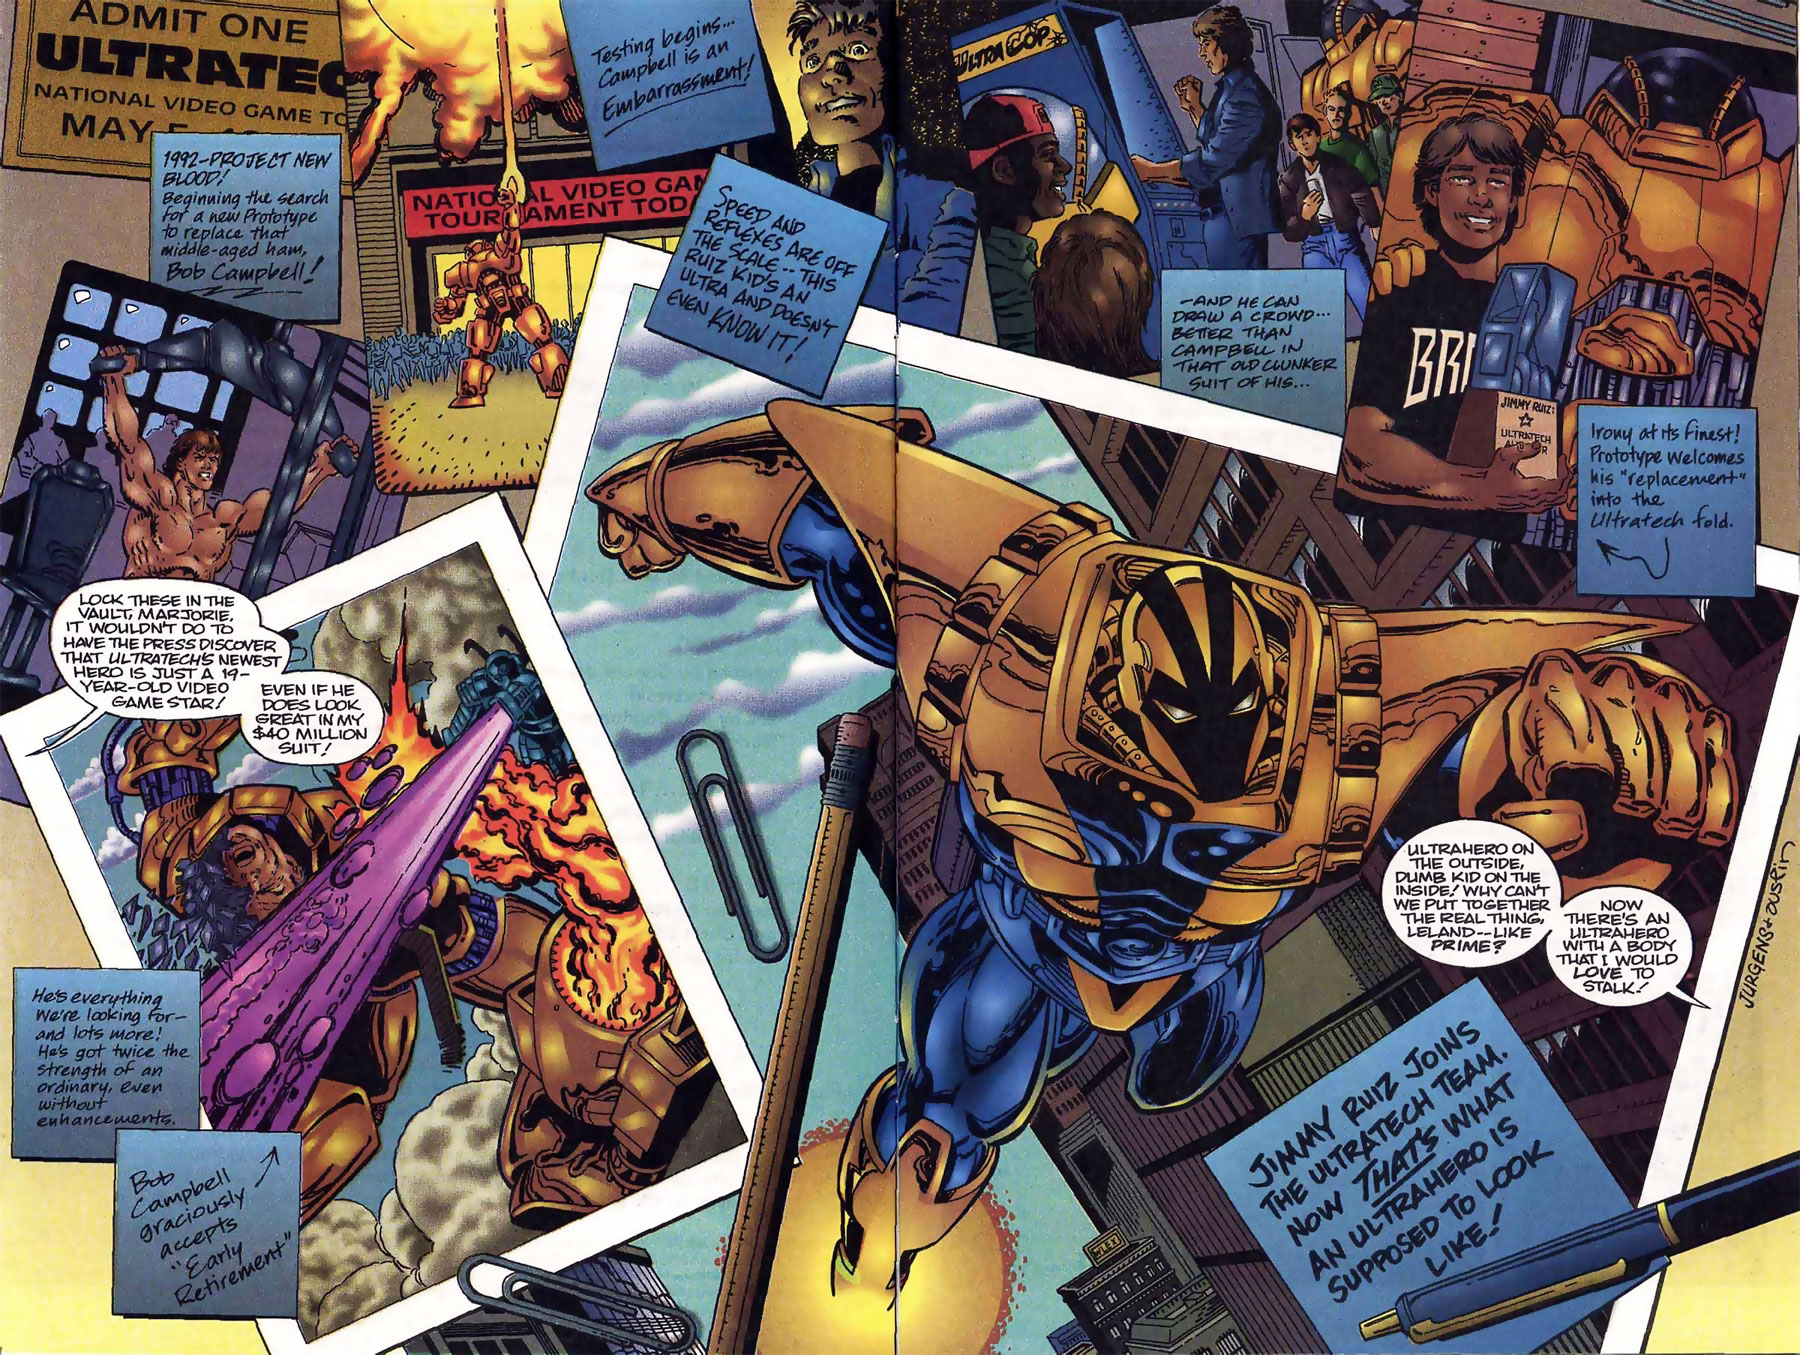 Prototype Ultraverse Origins by Dan Jurgens and Terry Austin